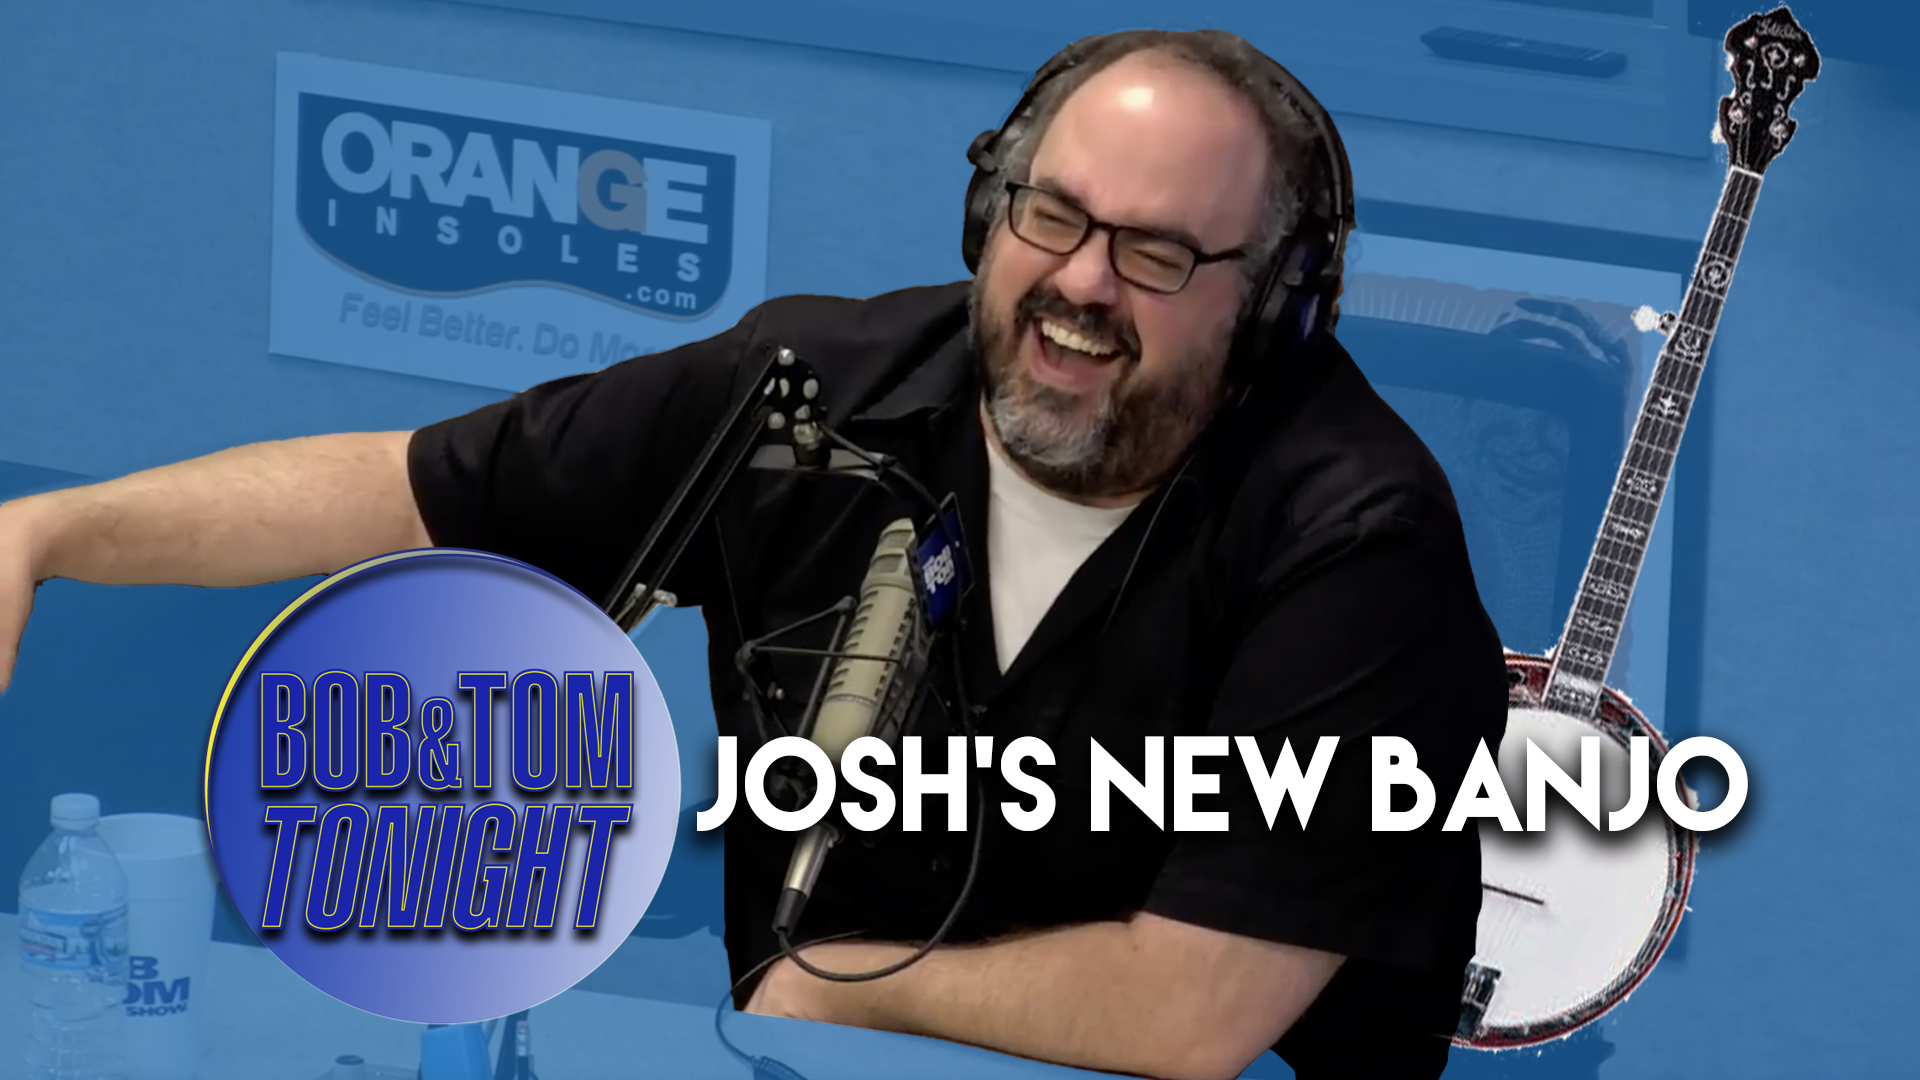 Josh's New Banjo | B&T Tonight